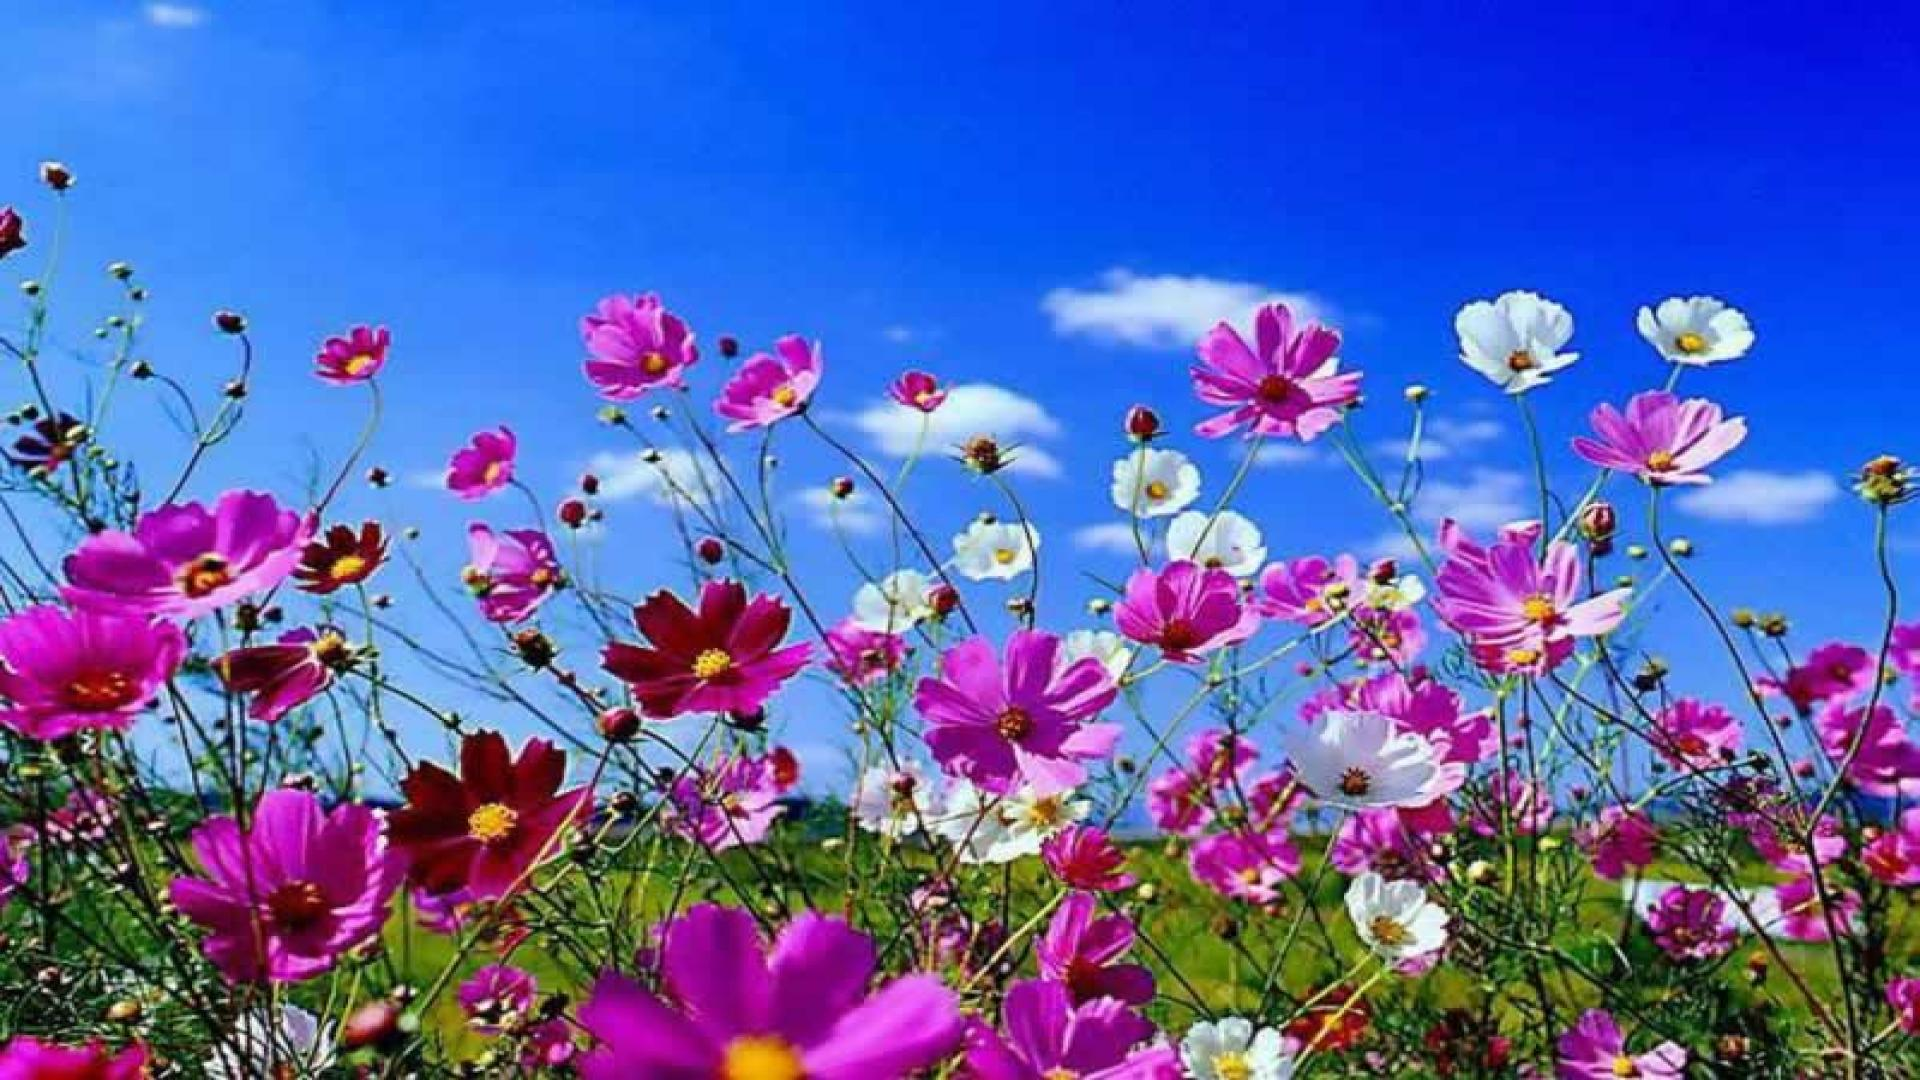 Beautiful Spring Desktop Wallpaper   Wallpaper High Definition High 1920x1080